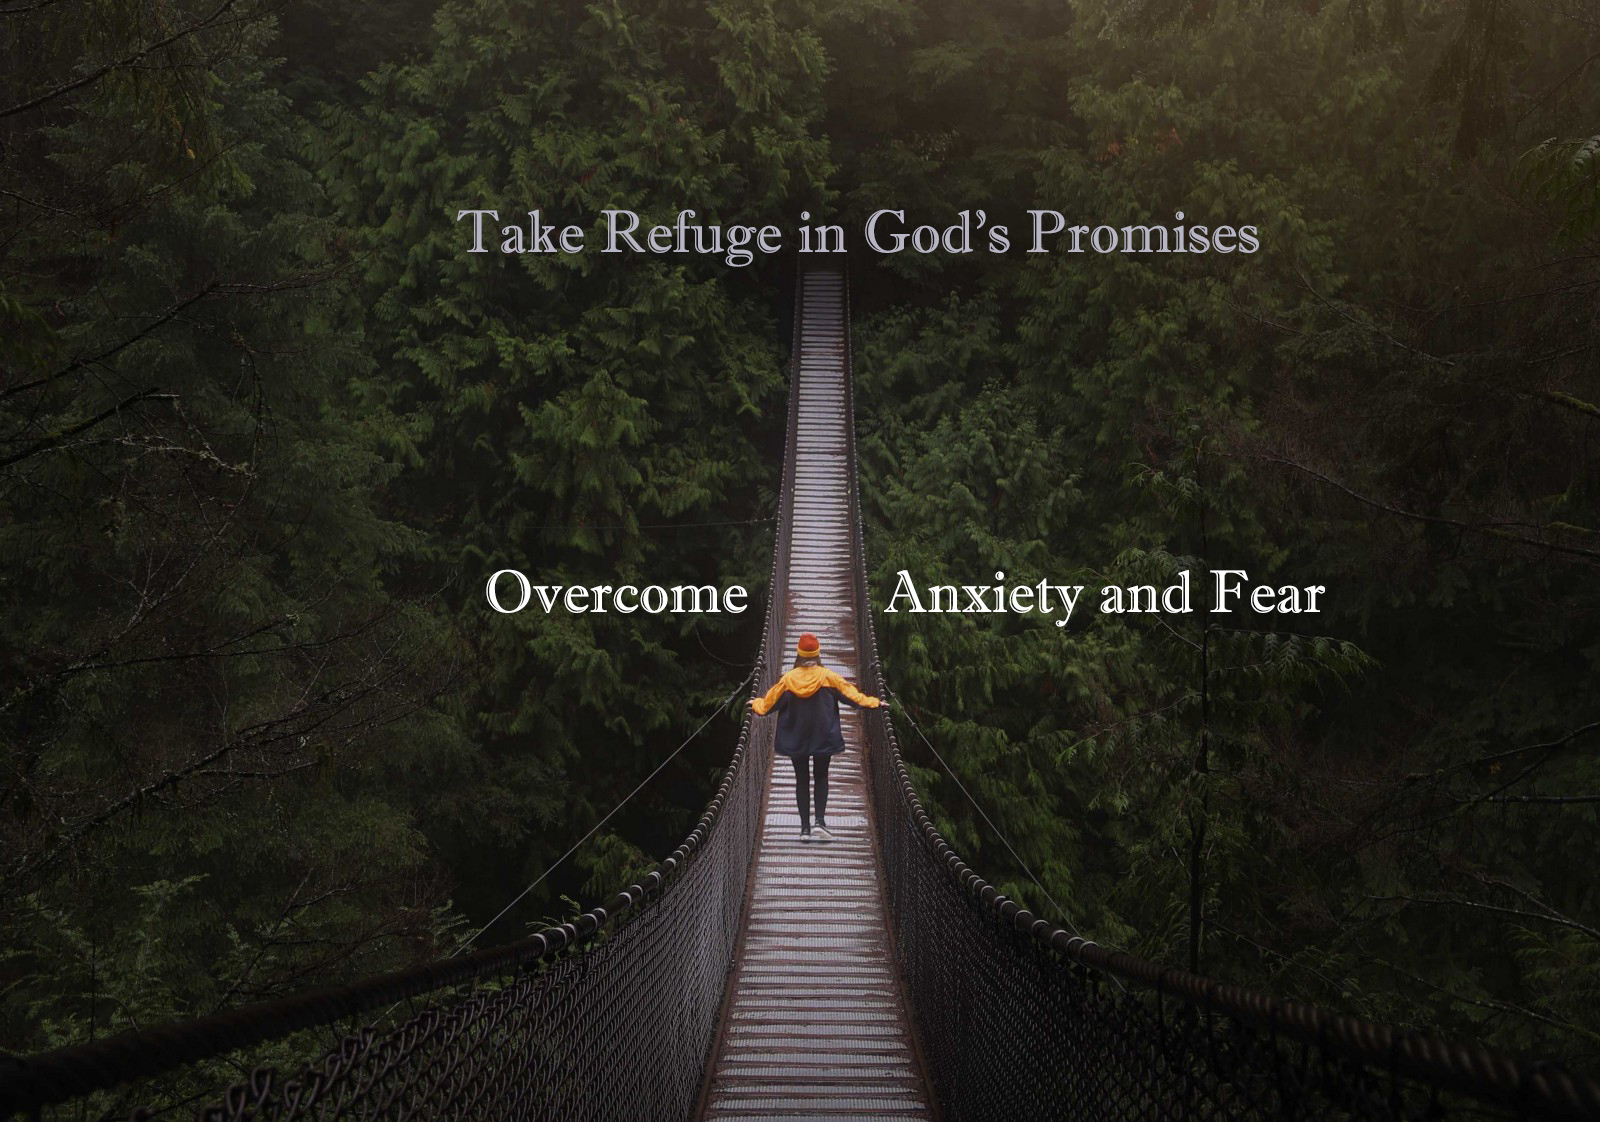 8 Comforting Bible Verses to Ease Anxiety